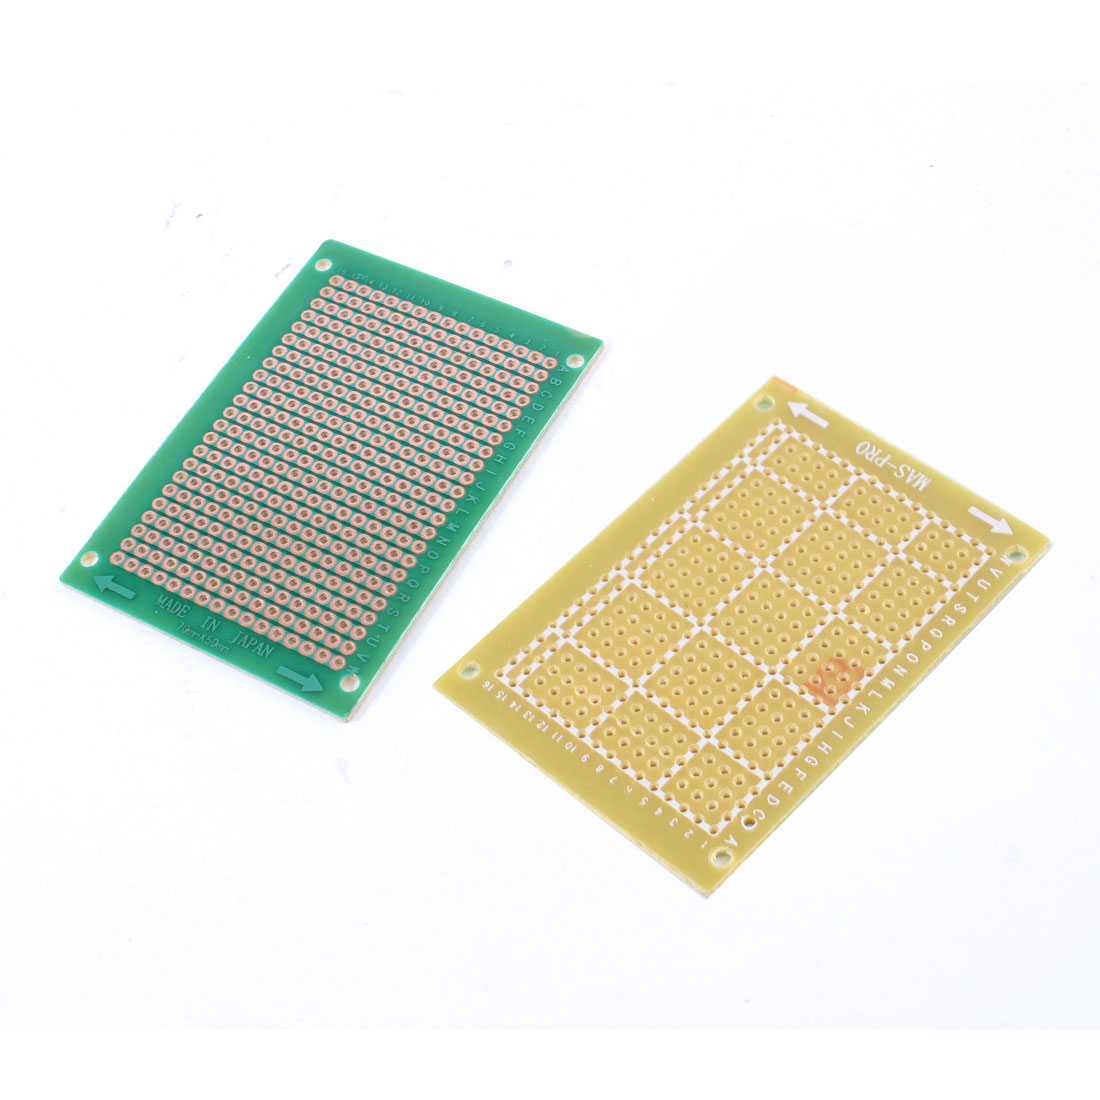 2 Pcs Prototype PCB Circuit Board Universal Stripboard Veroboard 70x50mm